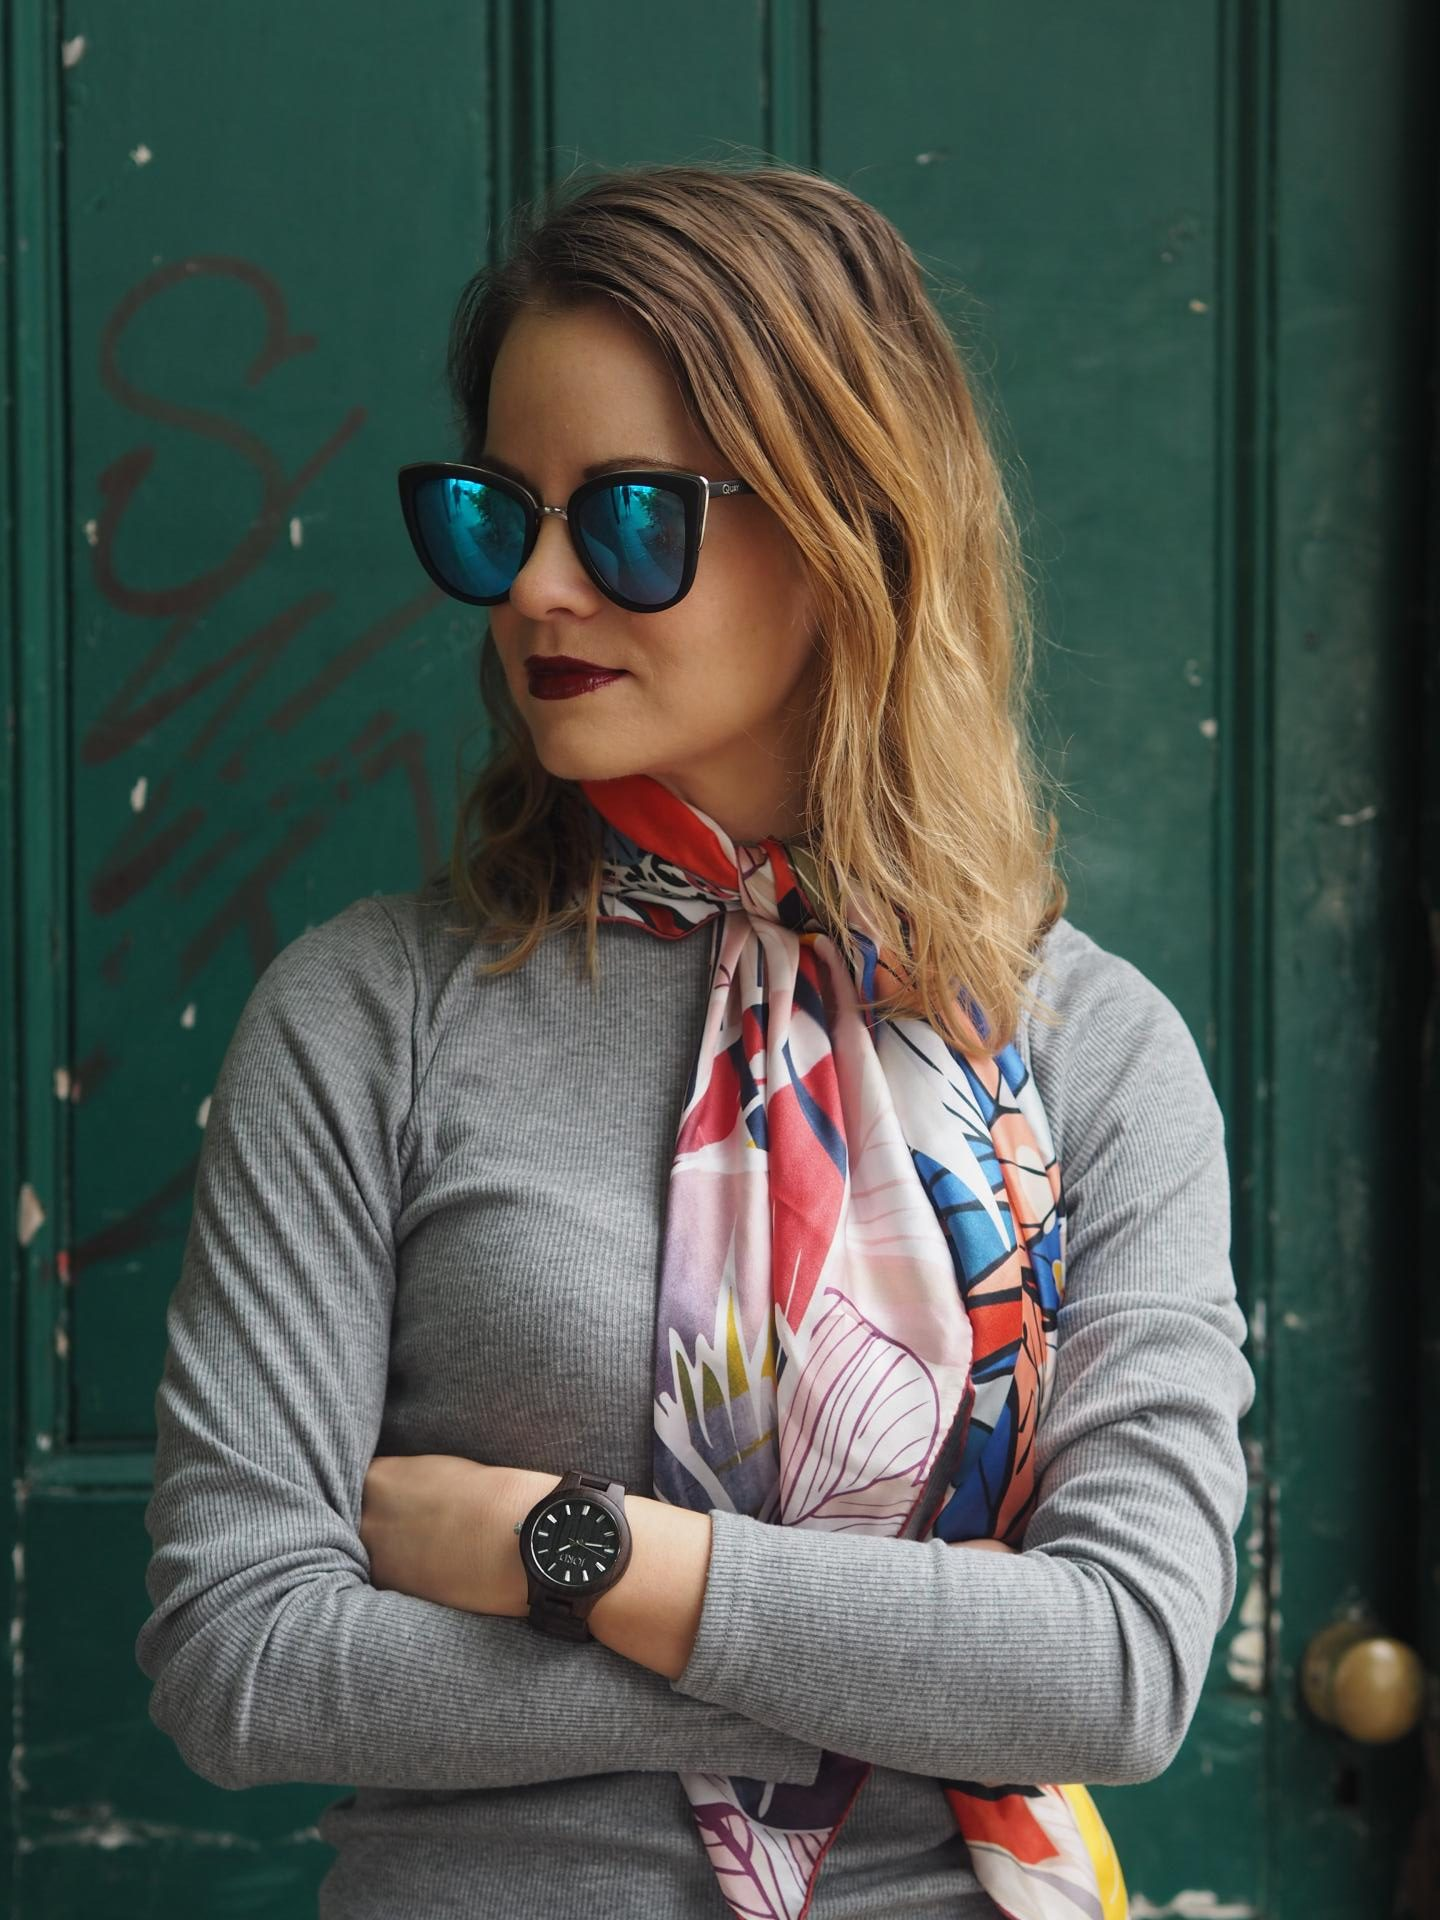 Jord Watch_womens watches_accessories_fashion bloggers_Beauty Rocks_Silk scarf